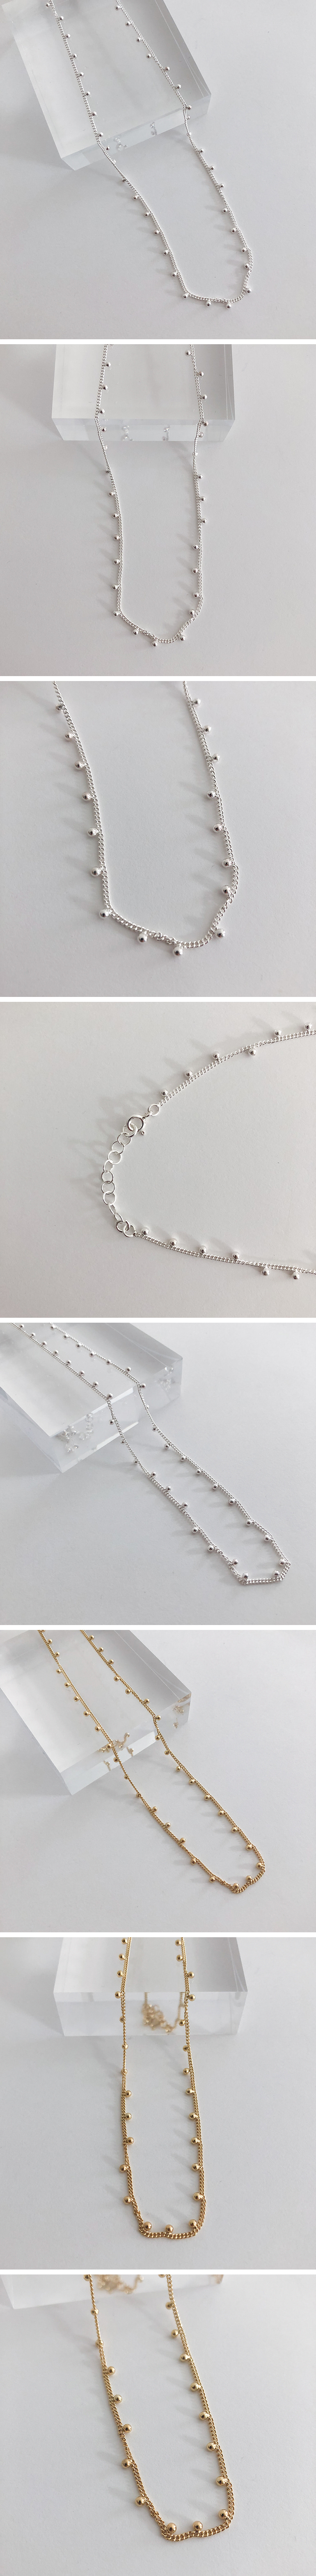 (silver925) sink necklace